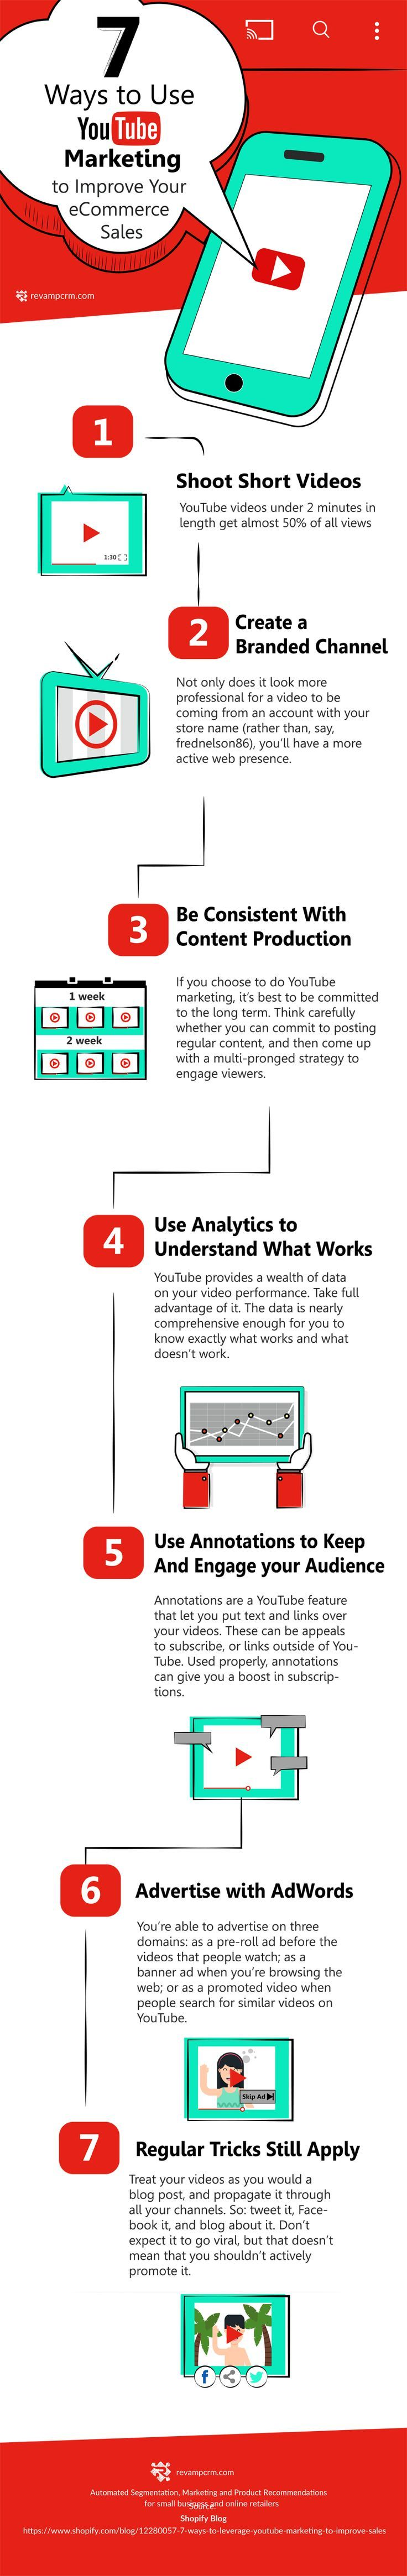 7 Ways To Use Youtube Marketing And Improve Your Ecommerce Sales Infographic Http Itz My Com Infographic Marketing Youtube Marketing Video Marketing